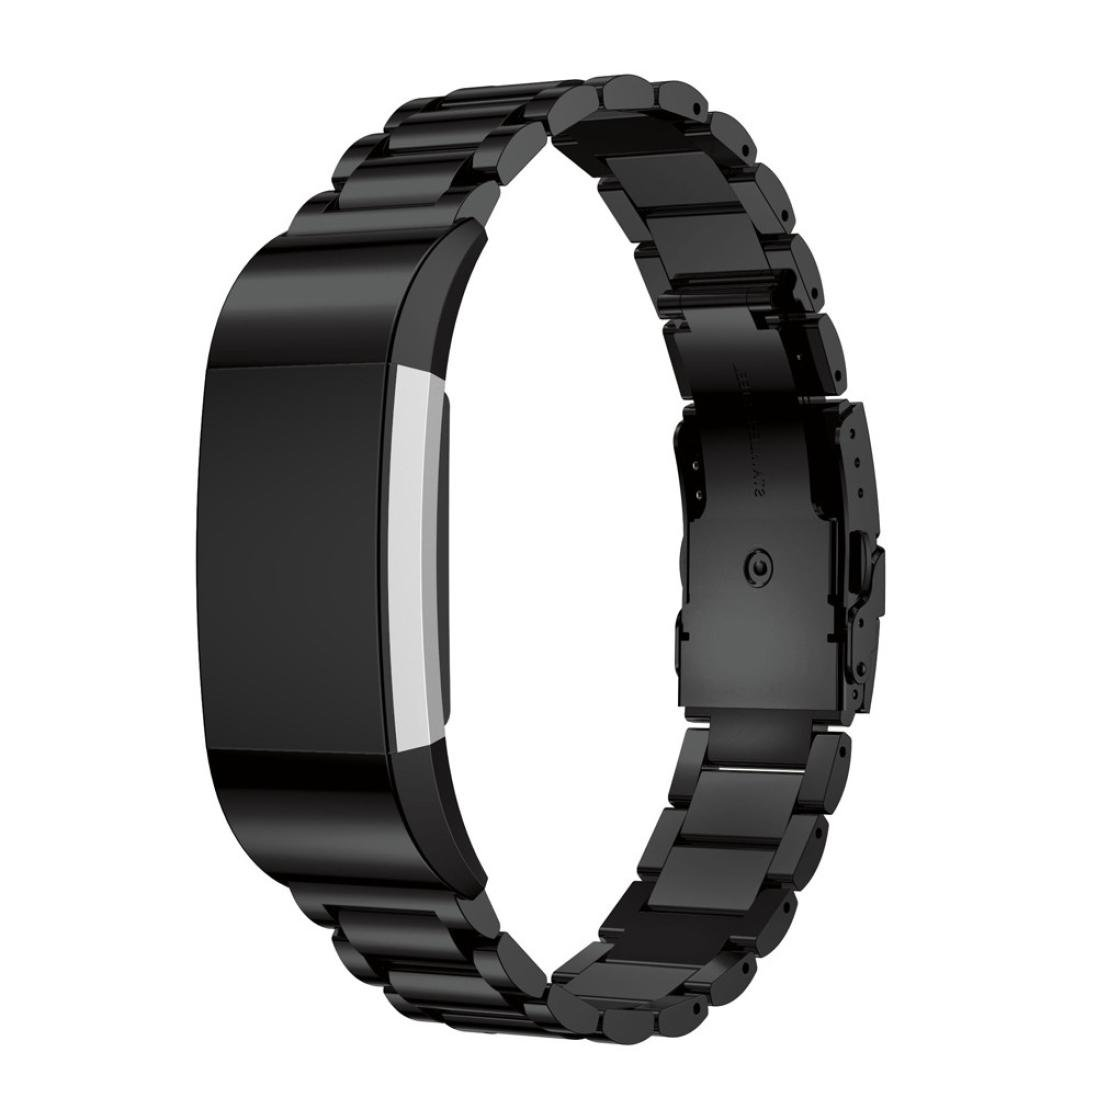 Odeer for Fitbit Charge 2 Stainless Steel Bracelet Smart Watch Band Strap (Black)